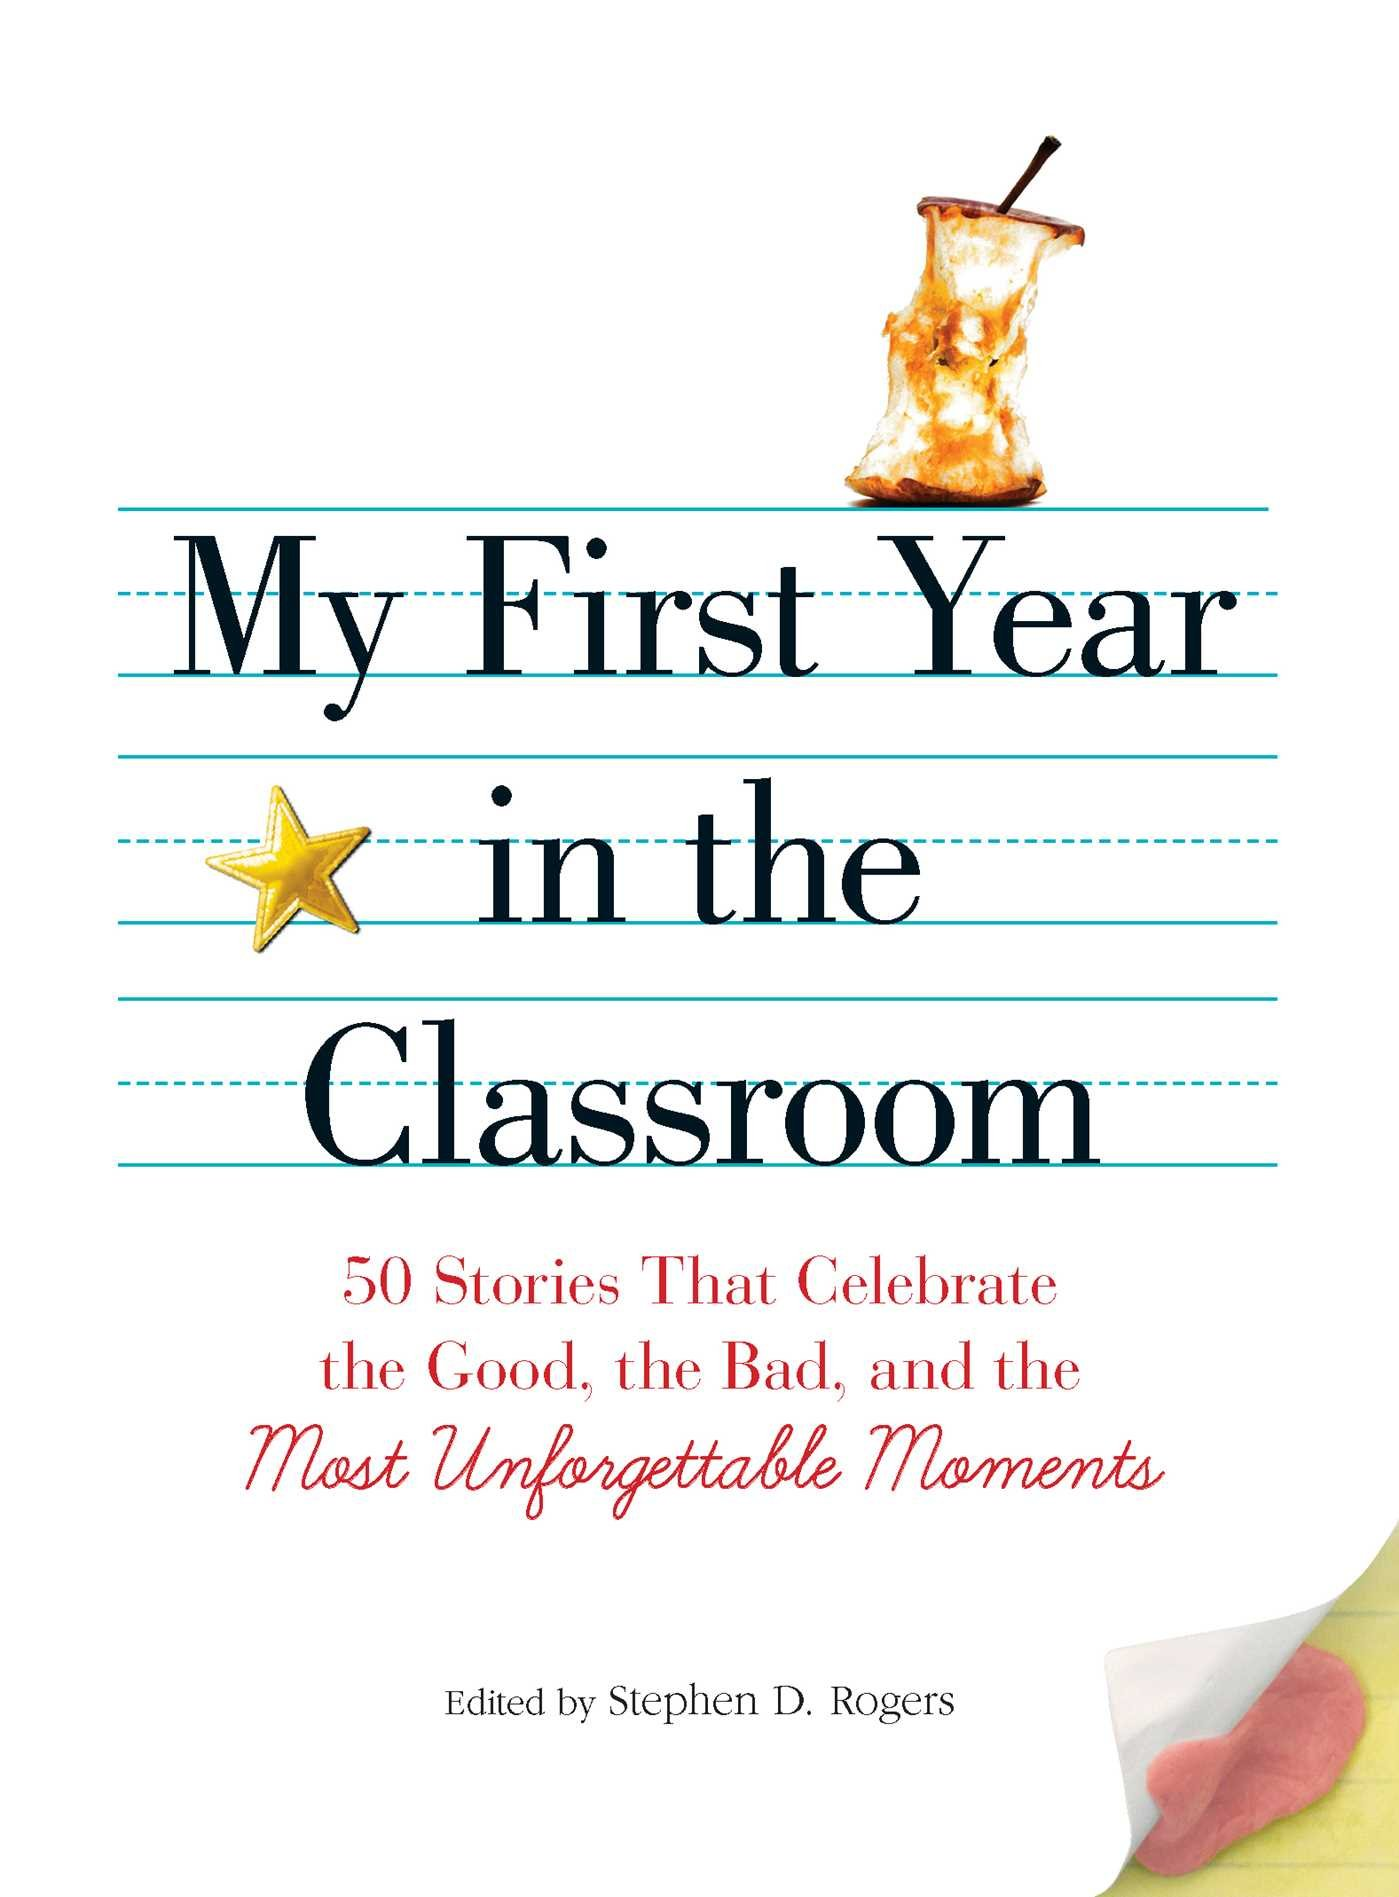 My First Year in the Classroom - This moving collection is sure to motivate new and veteran teachers alike.